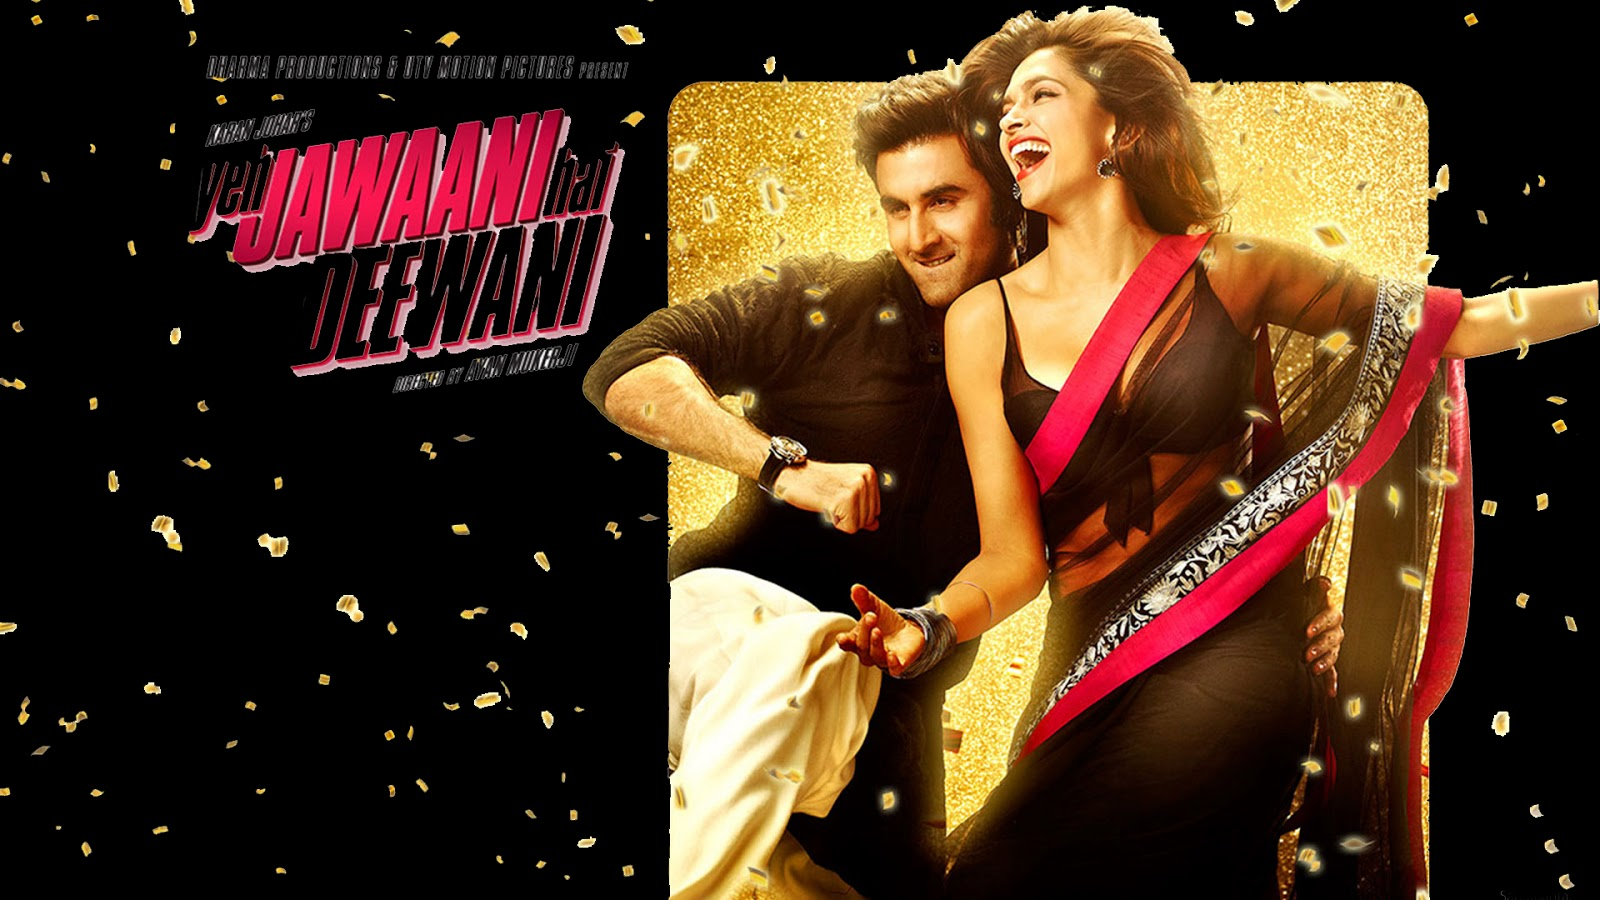 Divani Me Diwani Song Download Beenopinion On Movies Yeh Jawaani Hai Deewani Movie Reviewed